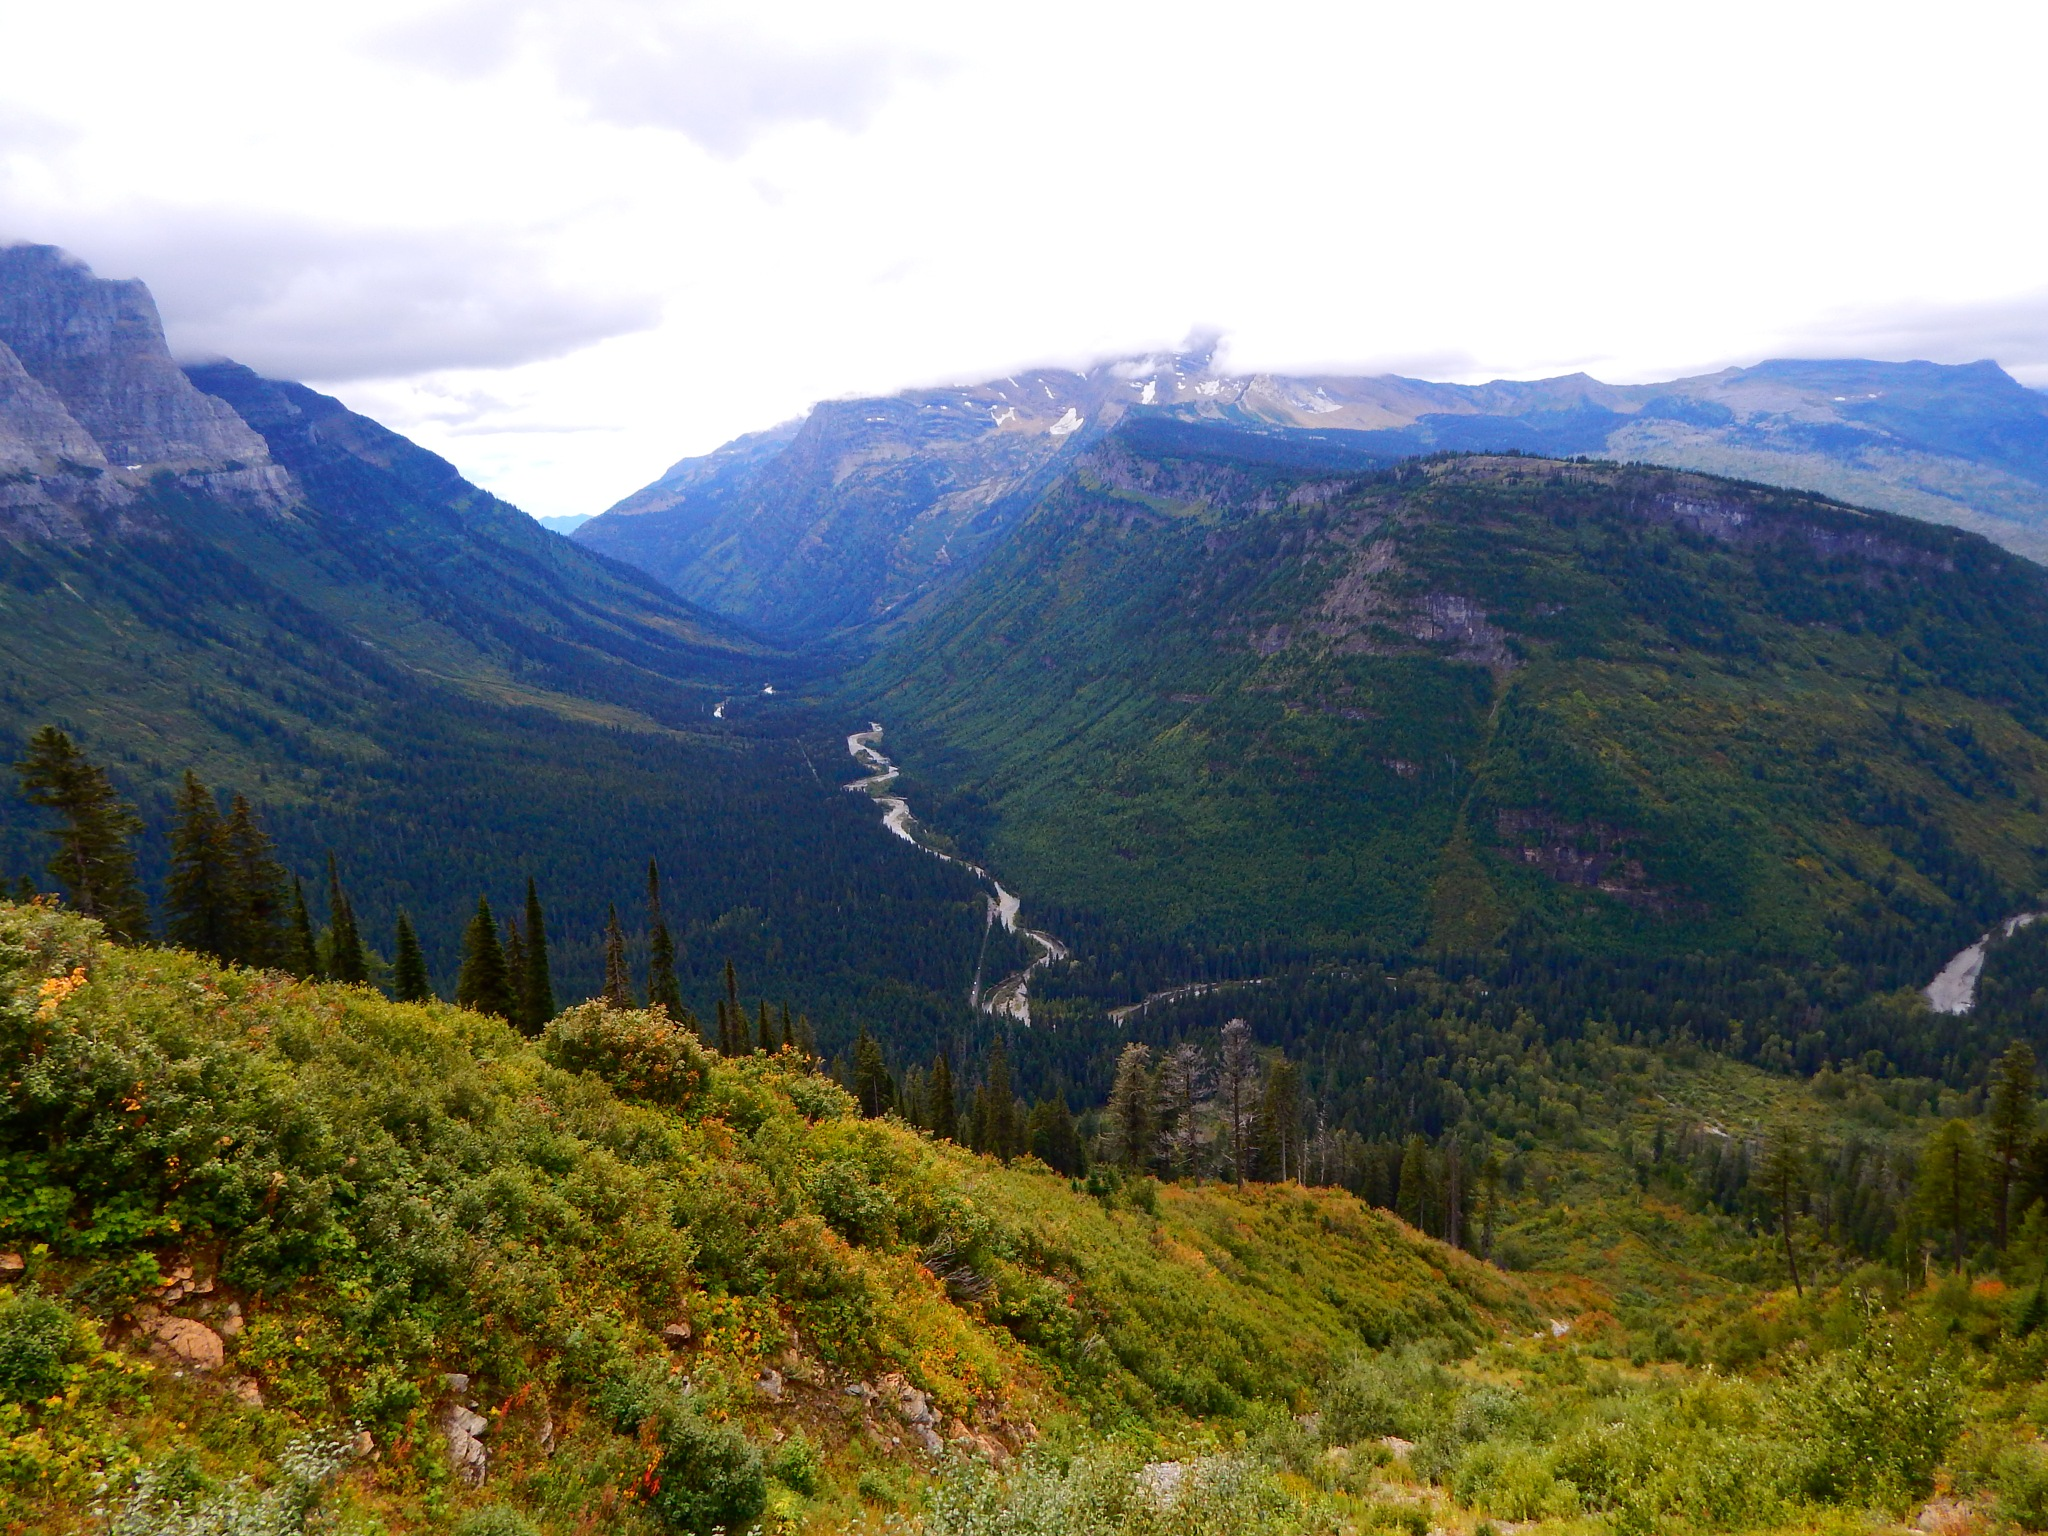 View in Glacier National Park by Lorie B.